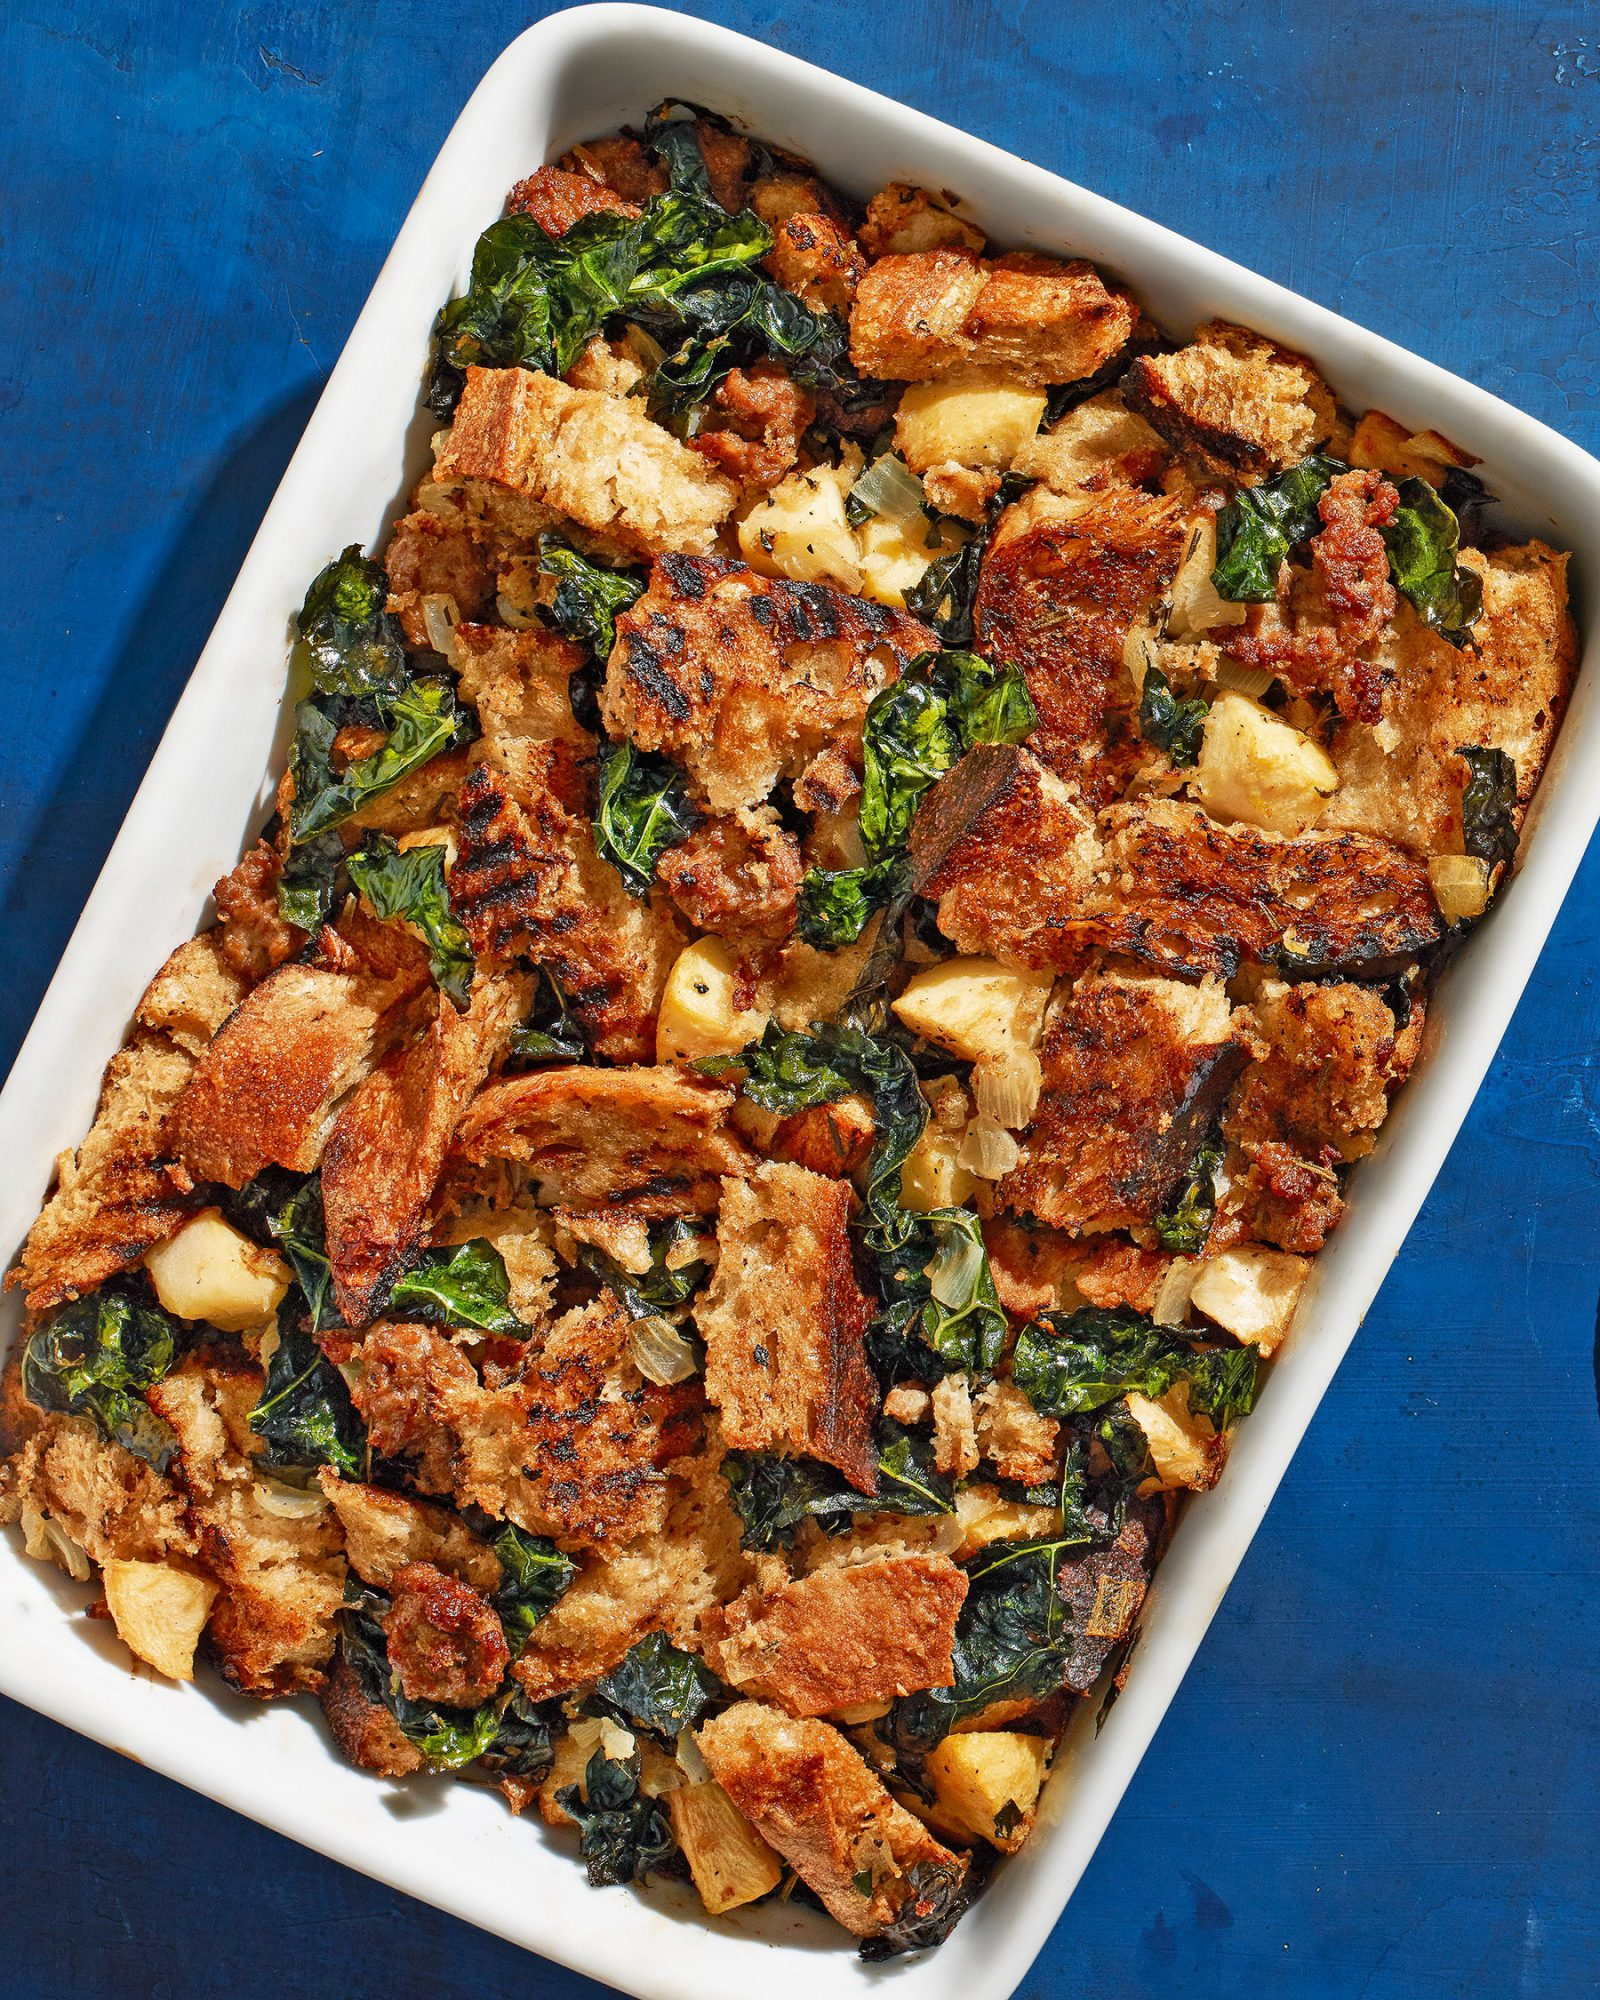 Sourdough Stuffing with Apple, Sausage & Kale